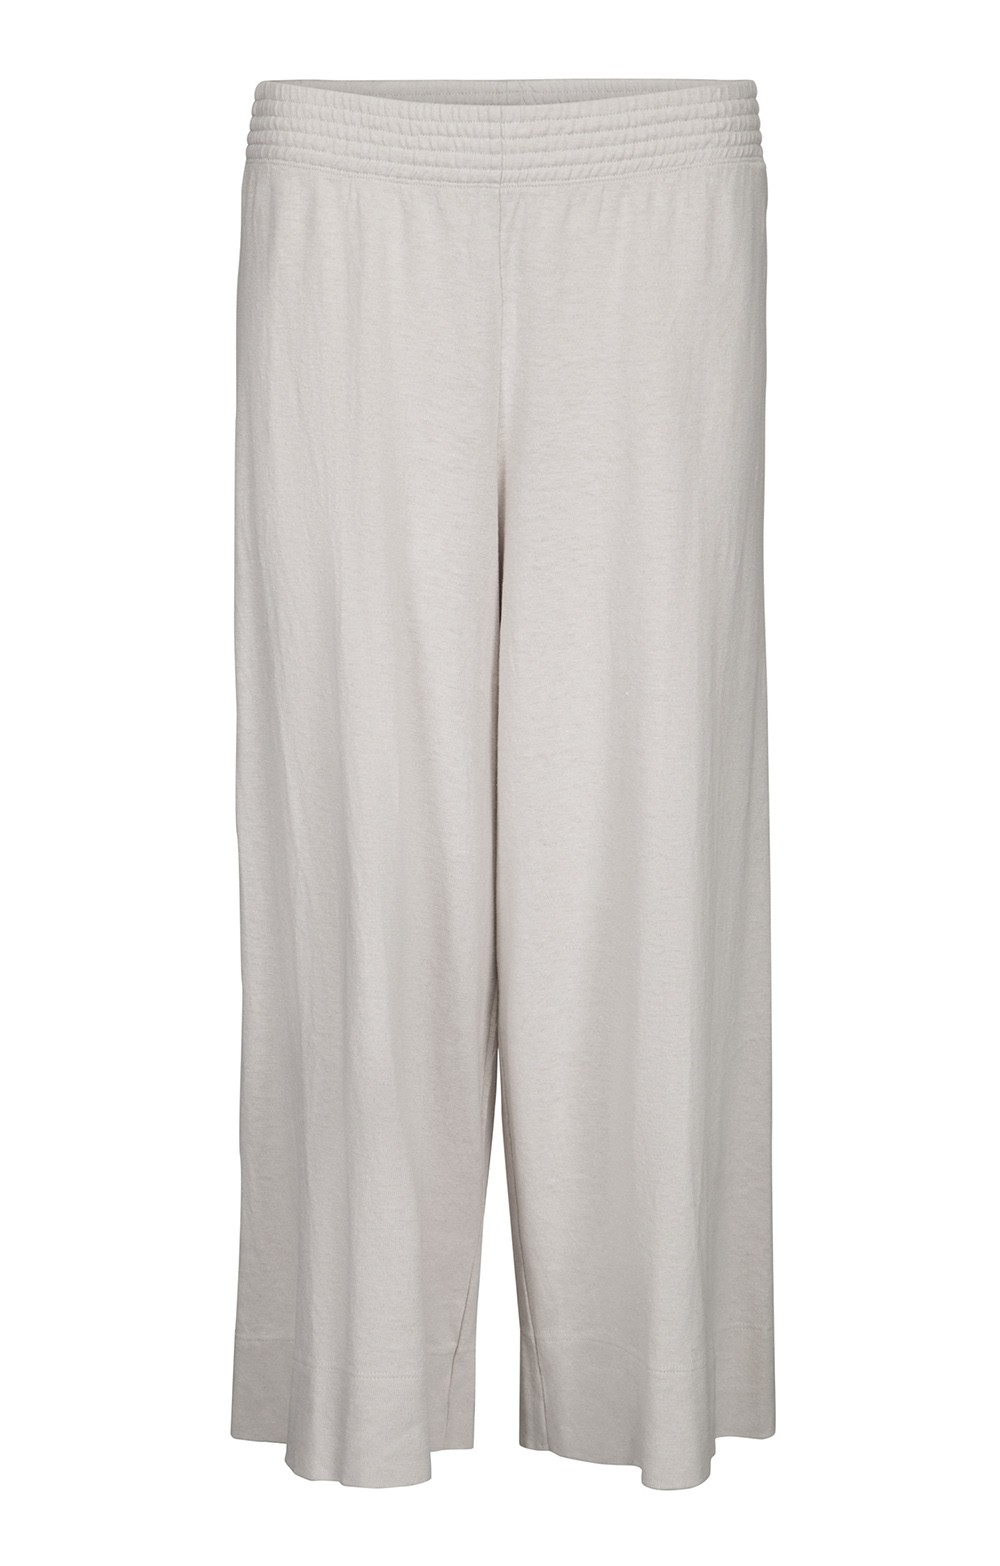 Two Danes Hanza trousers in limestone